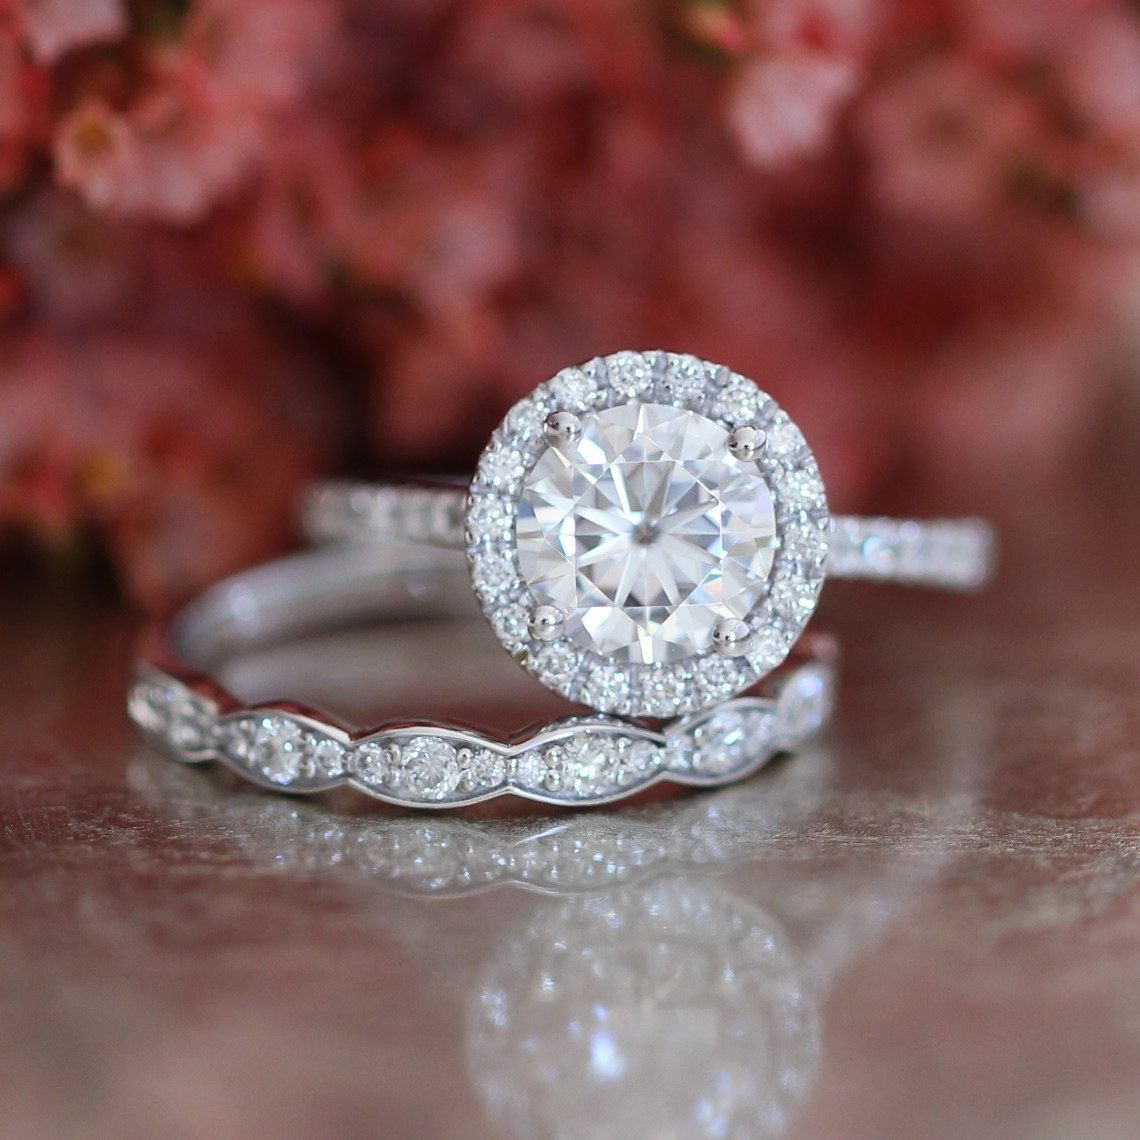 This bridal wedding ring set showcases a mm round cut certified